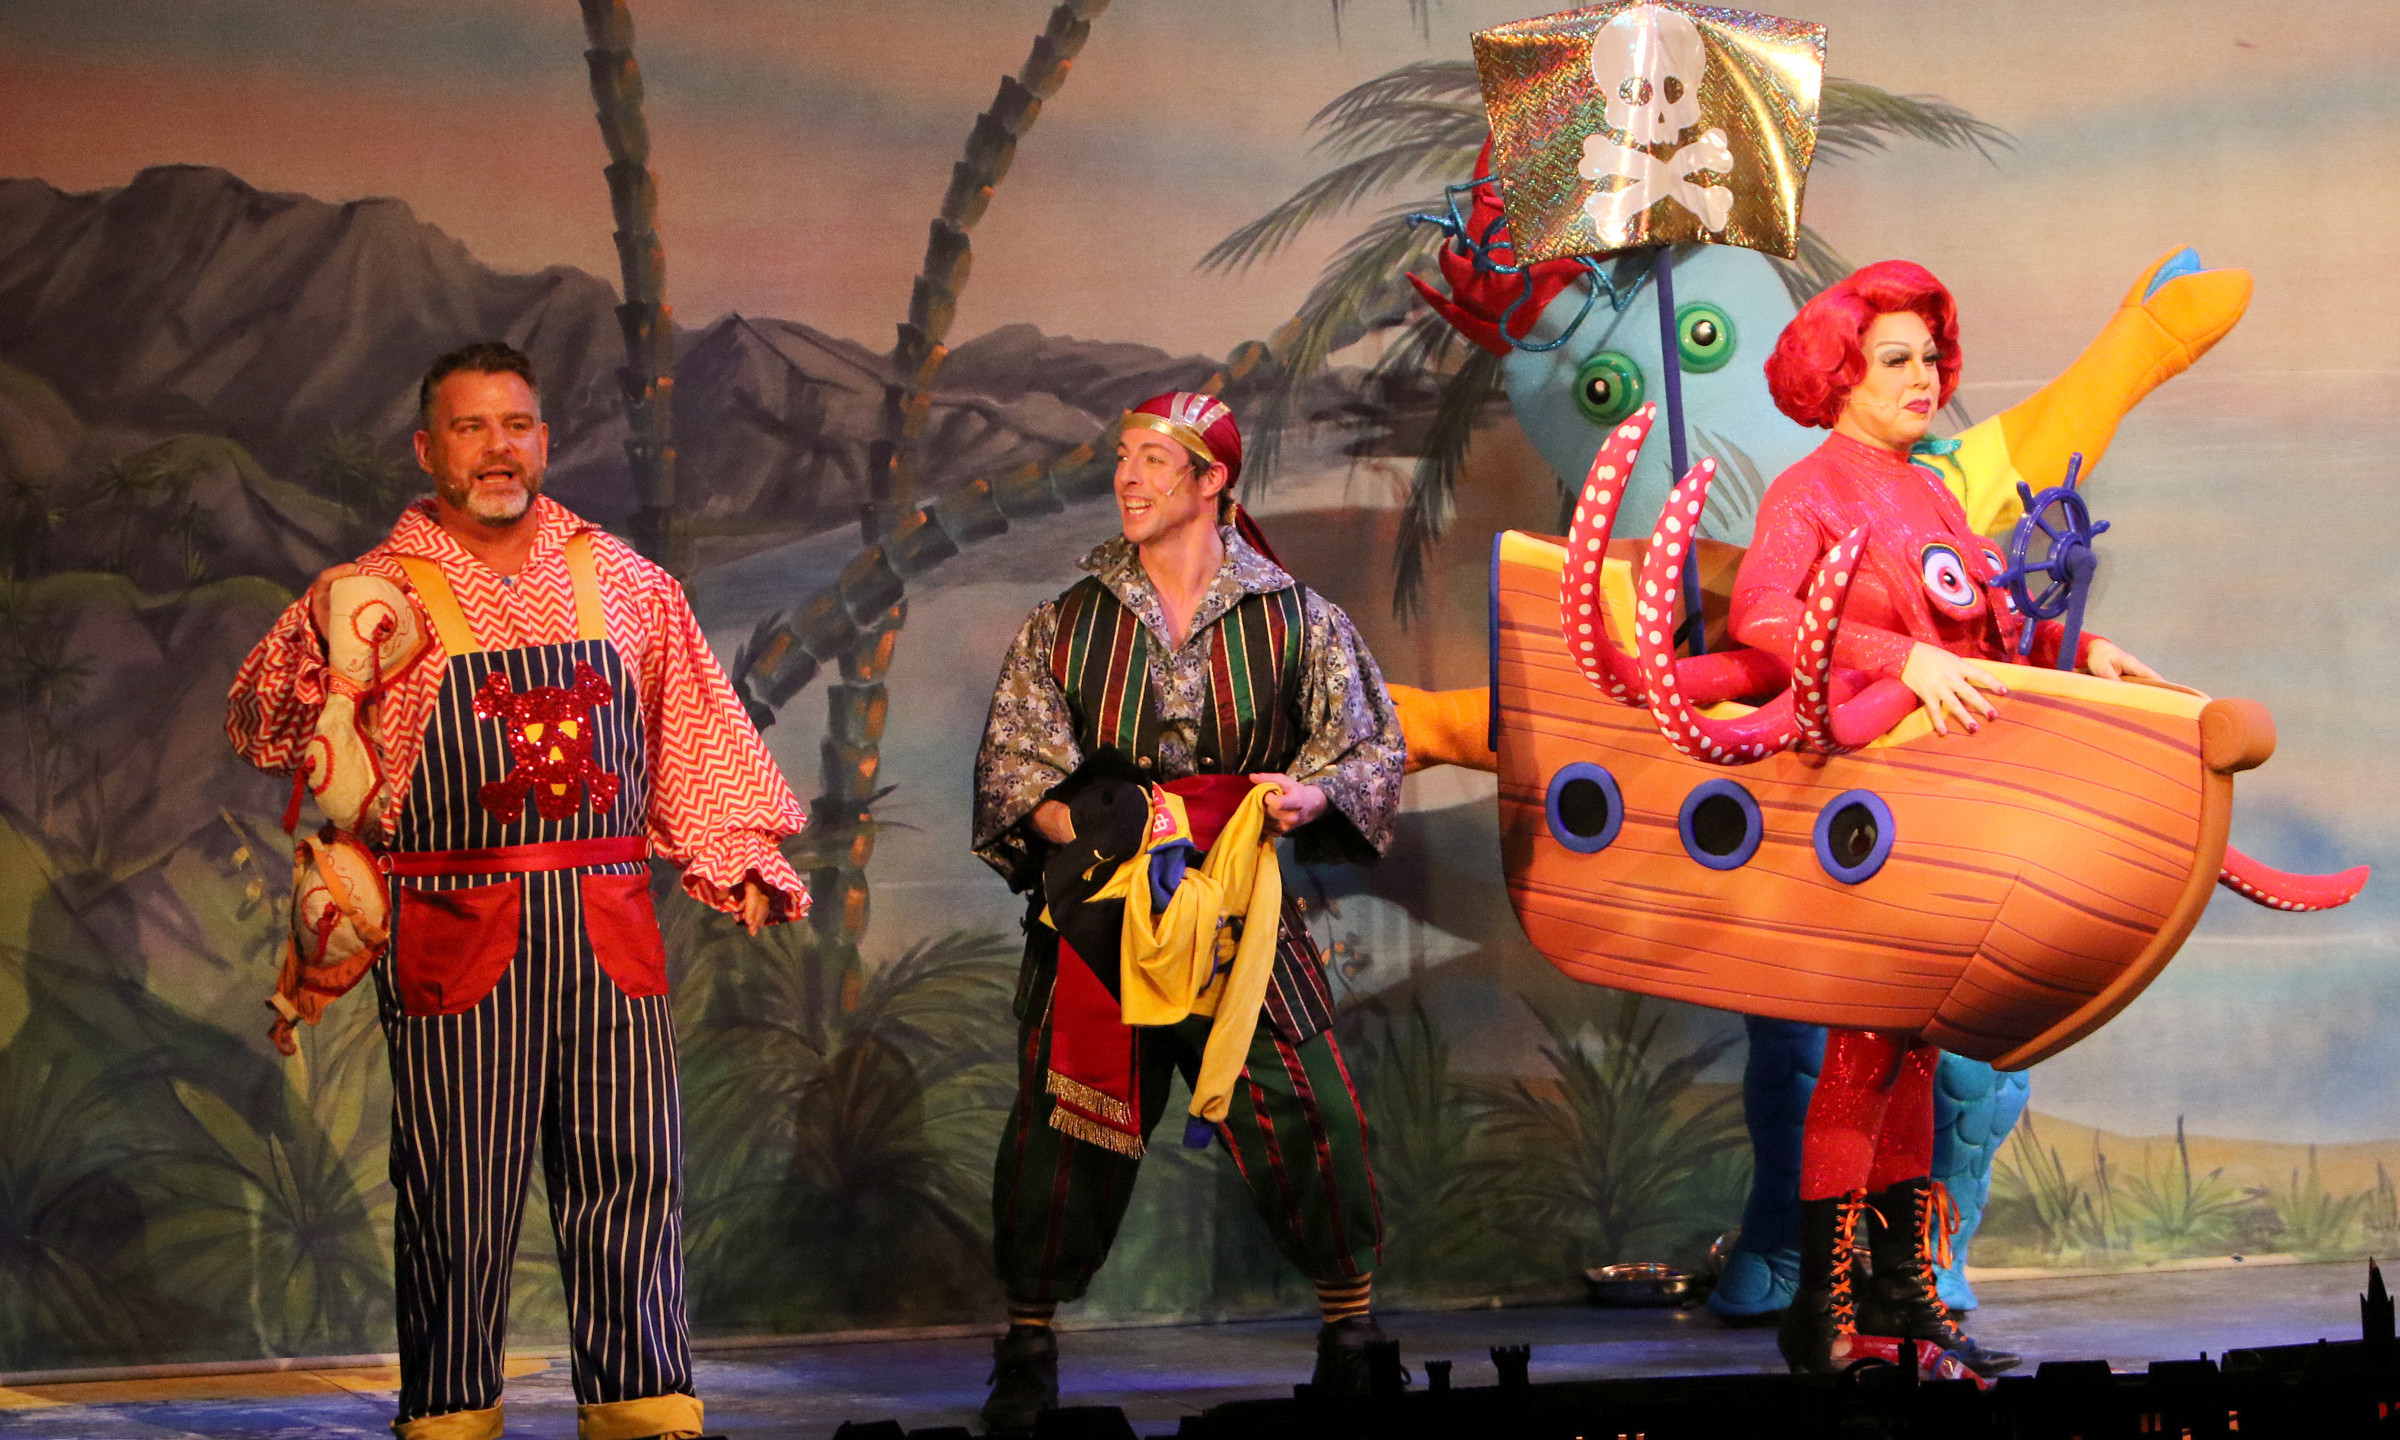 Smee, Pirate and Mrs Smee 12 Days of Chr